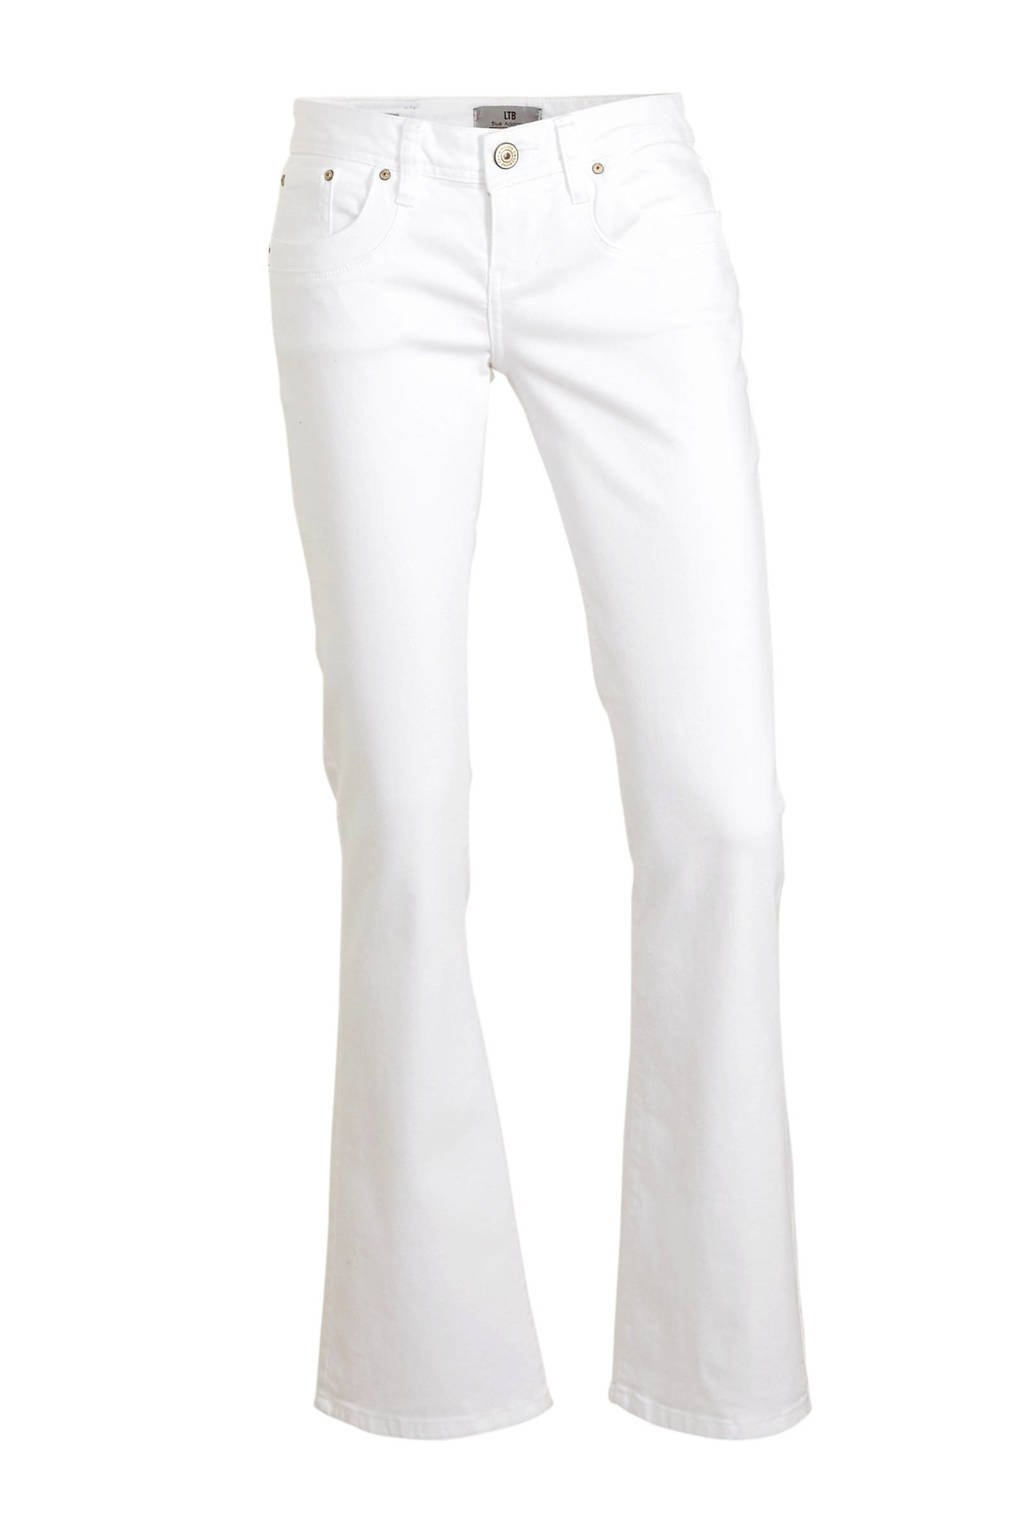 LTB low waist bootcut jeans Valerie wit, Wit